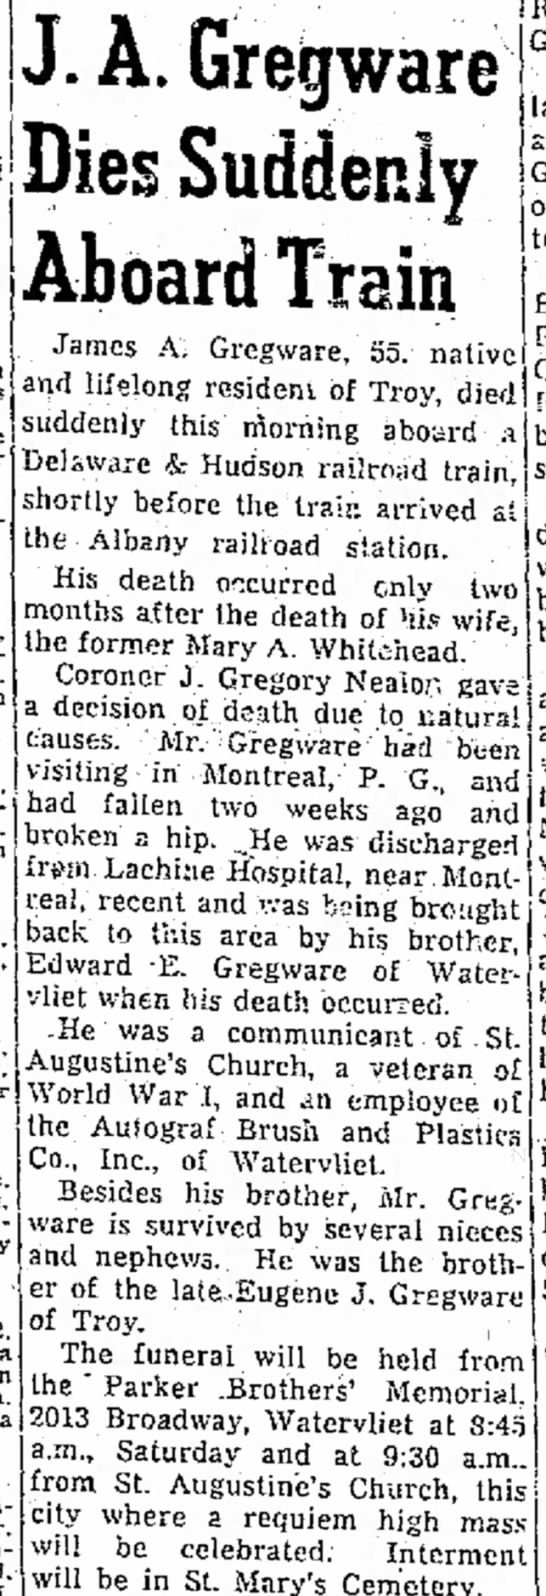 J.A. Gregware Dies Aboard Train  4/30/52 newspaper -